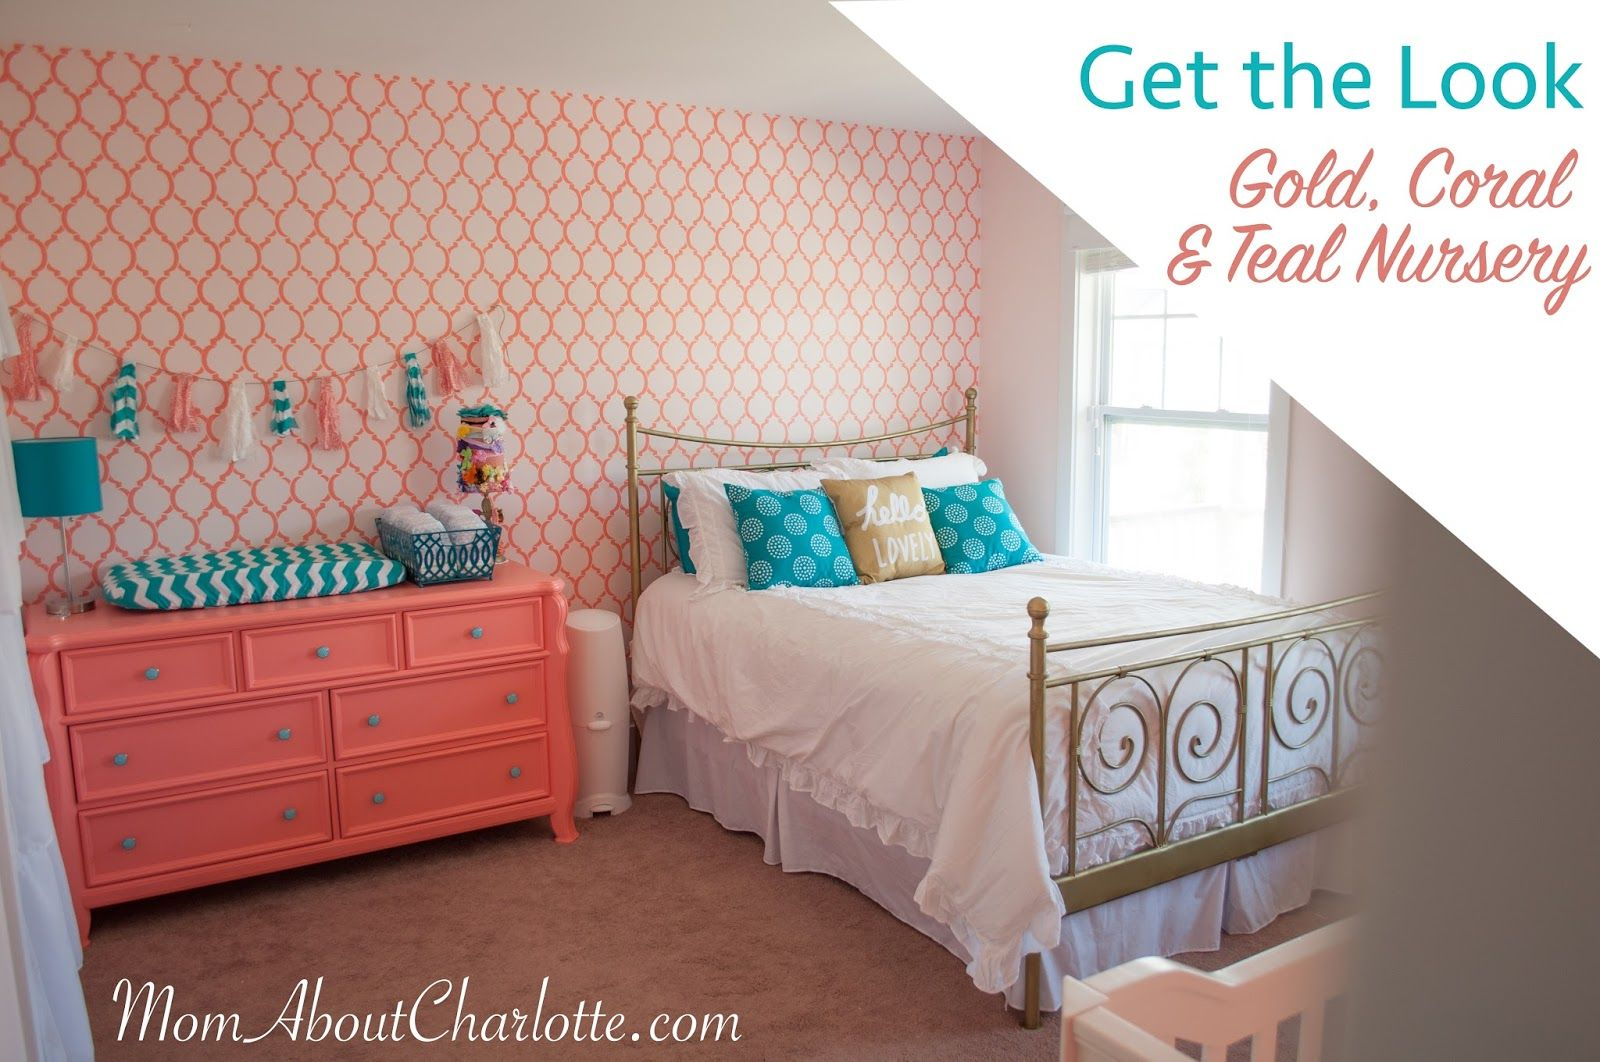 gold coral  teal nursery get the look with images